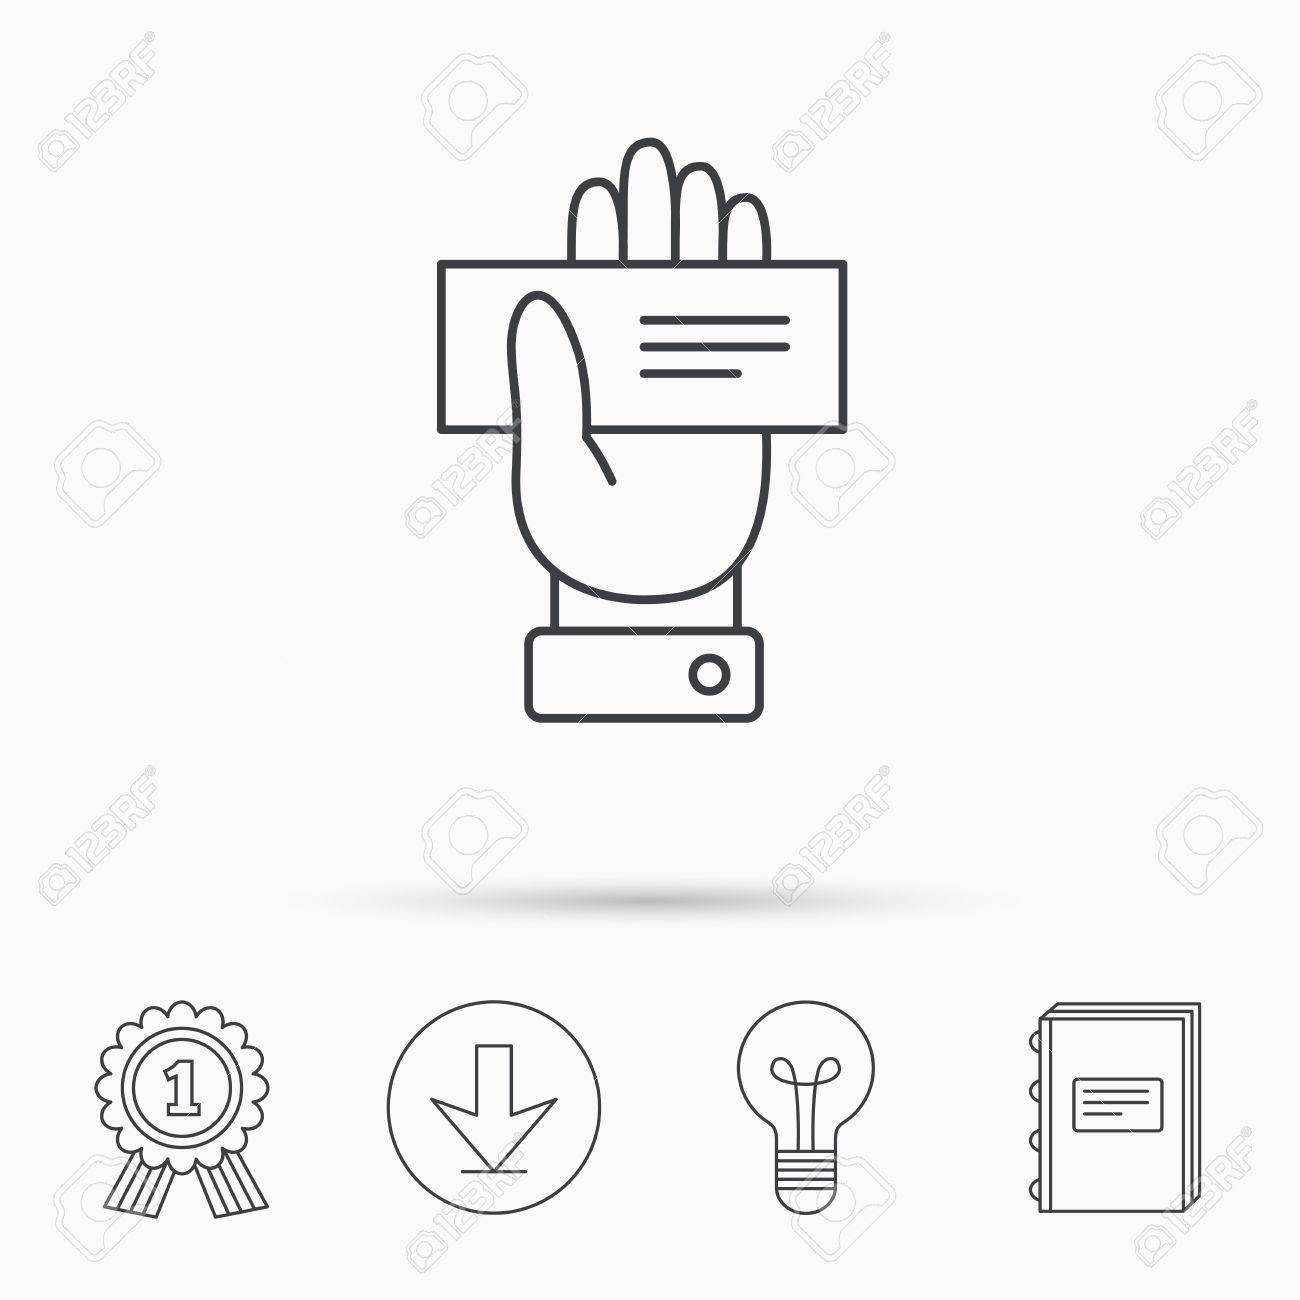 Cheque Icon Giving Hand Sign Paying Check In Palm Symbol Download